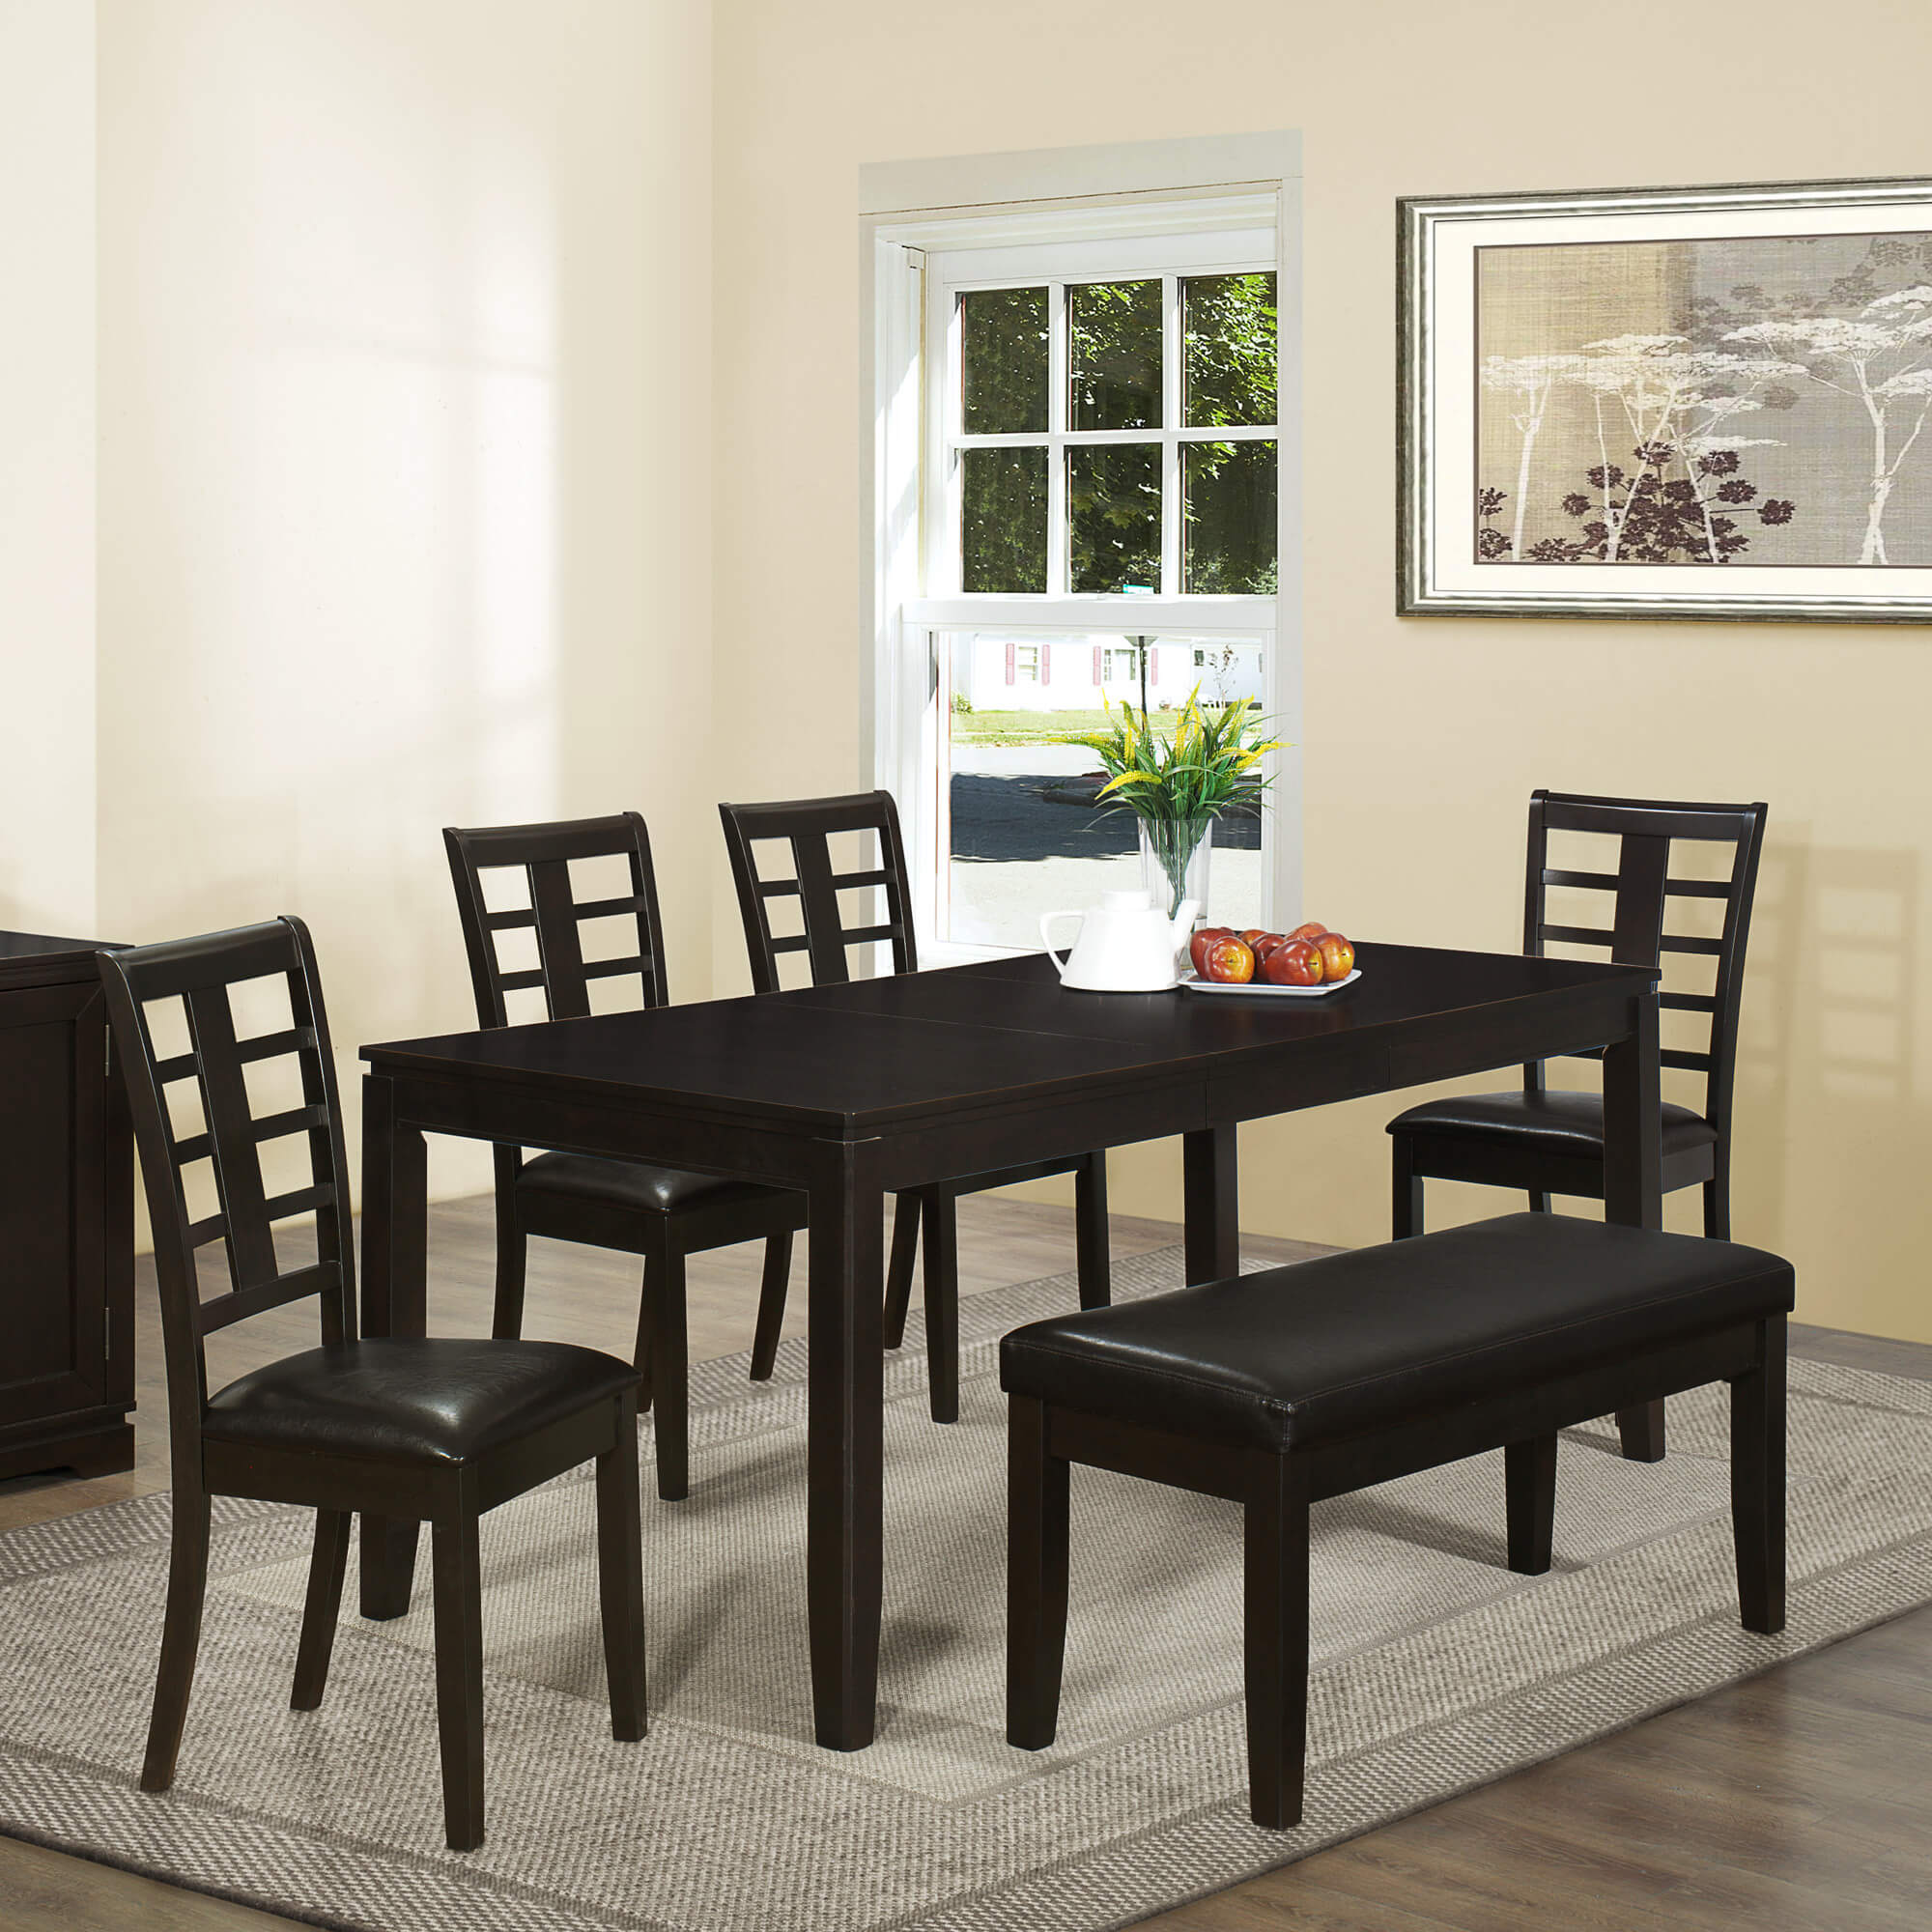 Contemporary Asian-inspired dining set with bench is a good size being able to accommodate & 26 Dining Room Sets (Big and Small) with Bench Seating (2018)